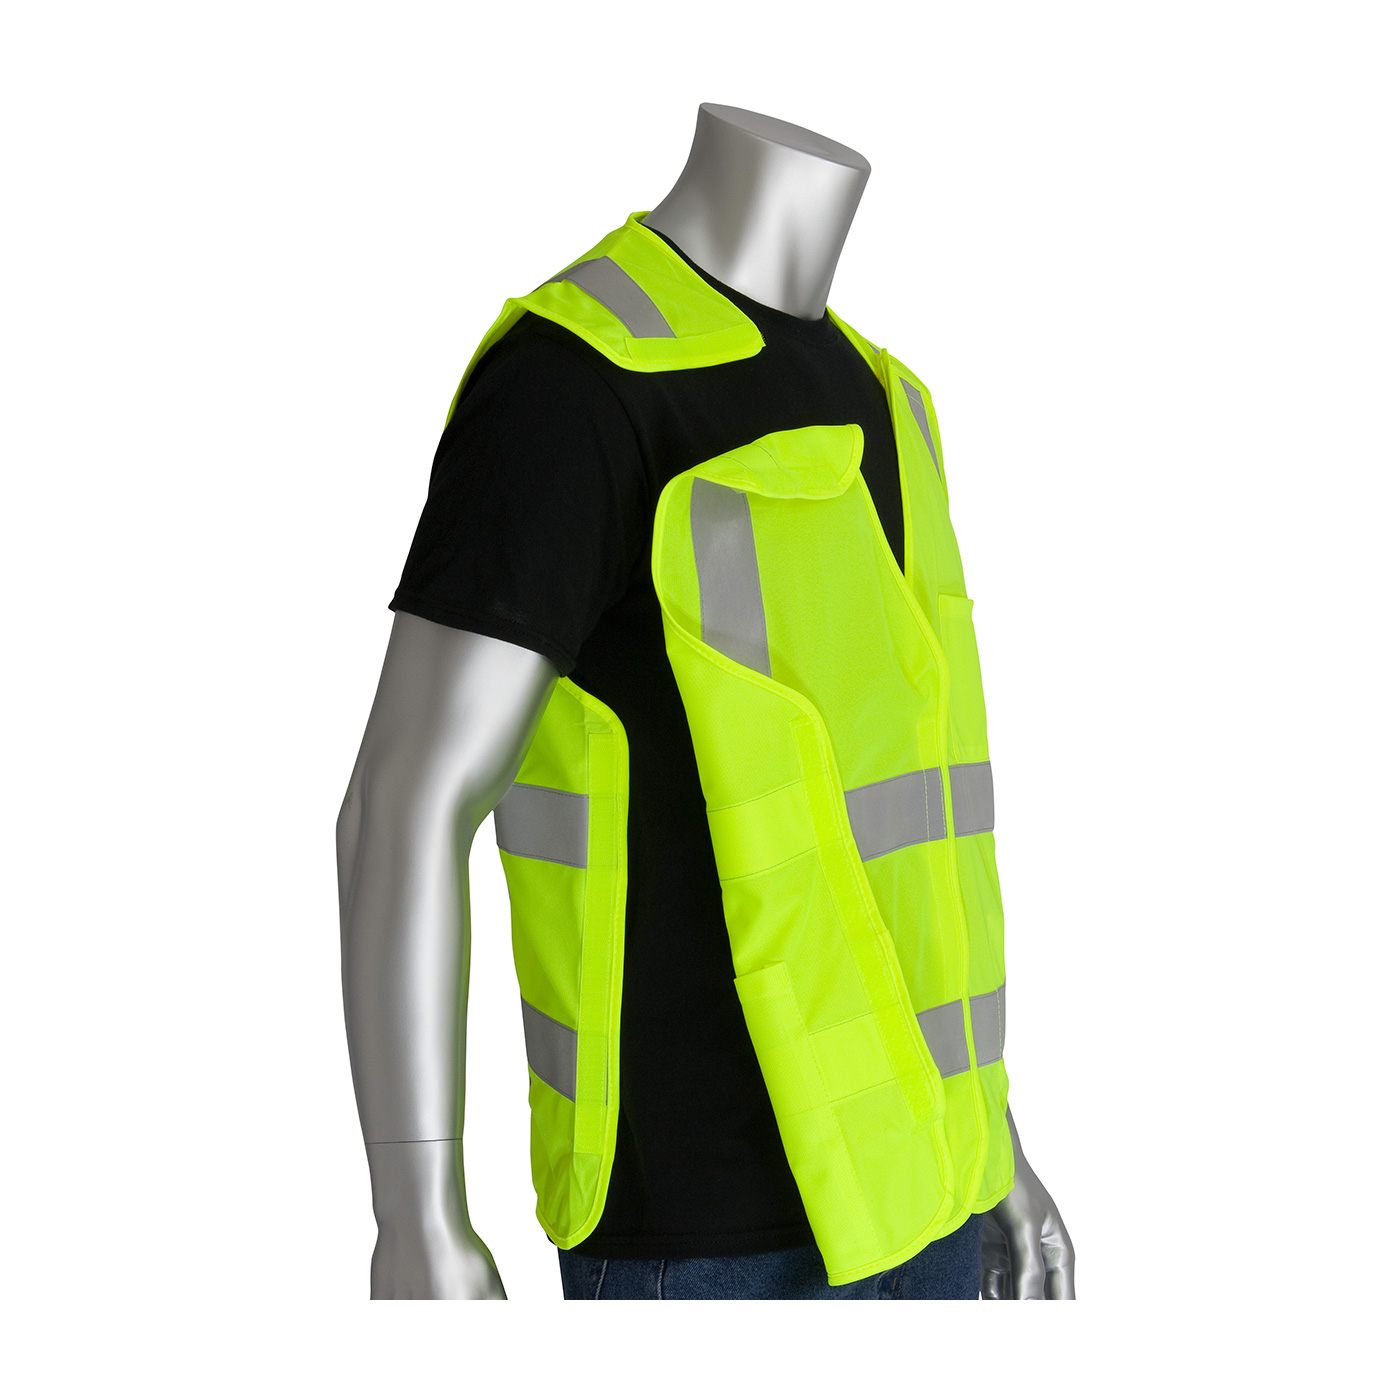 PIP 305-5PVFRLY ANSI Class 2 Type R FR-Treated 5-Point Breakaway Solid Fabric Vest, Lime